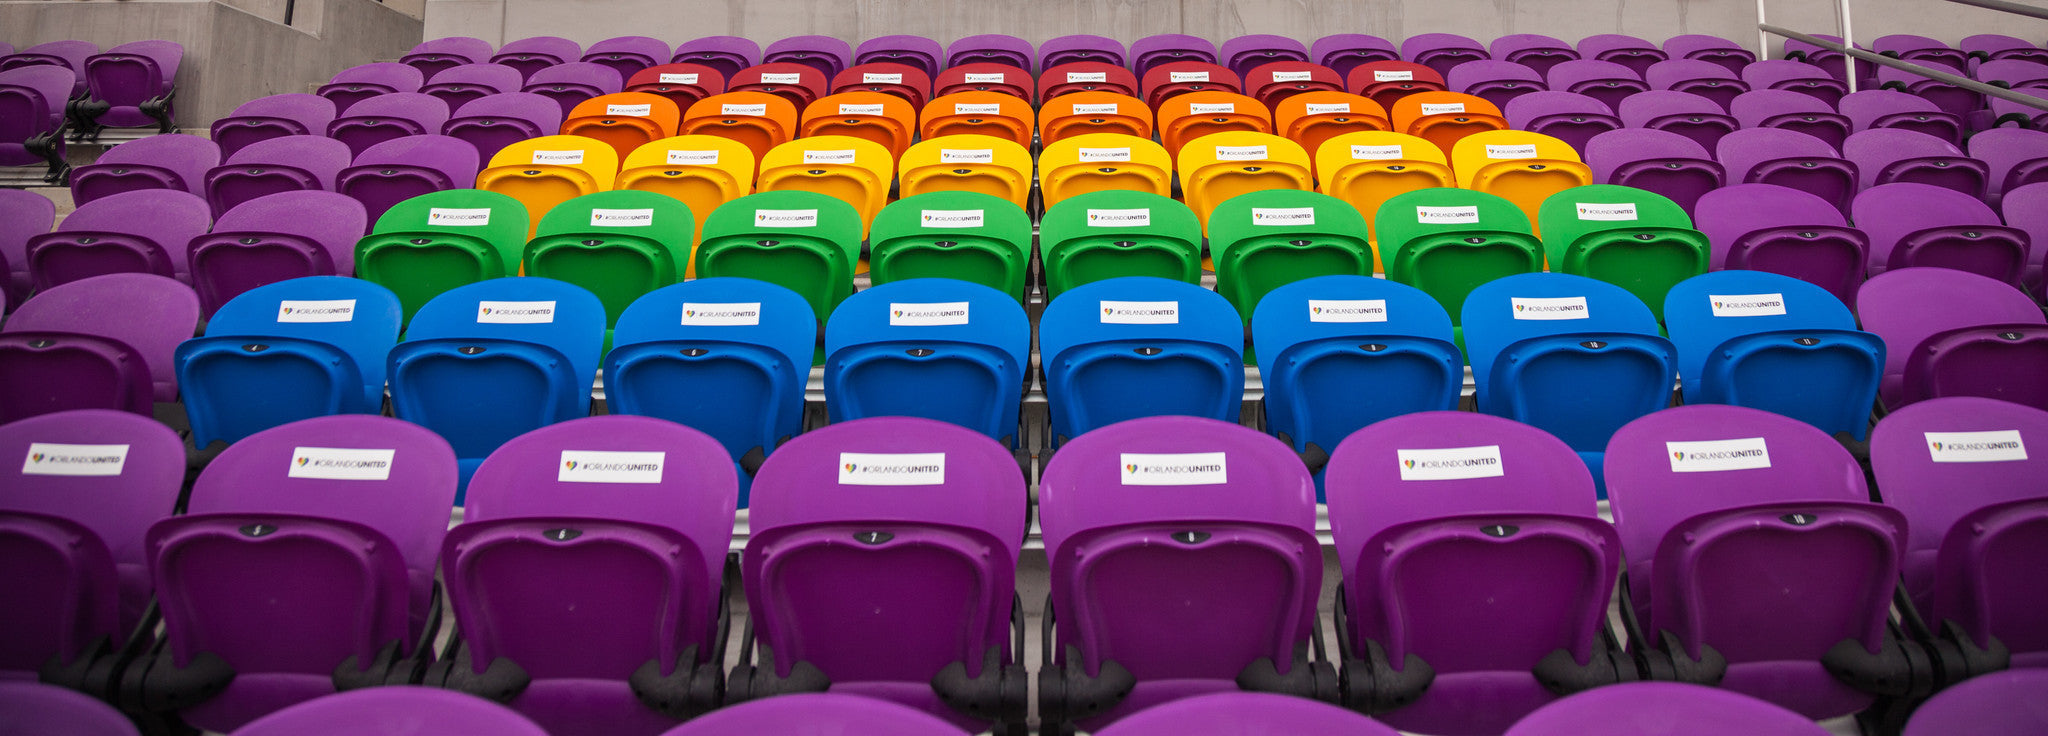 Orlando City honors the Pulse Nightclub victims with dedicated seats in the form of the LBGT flag